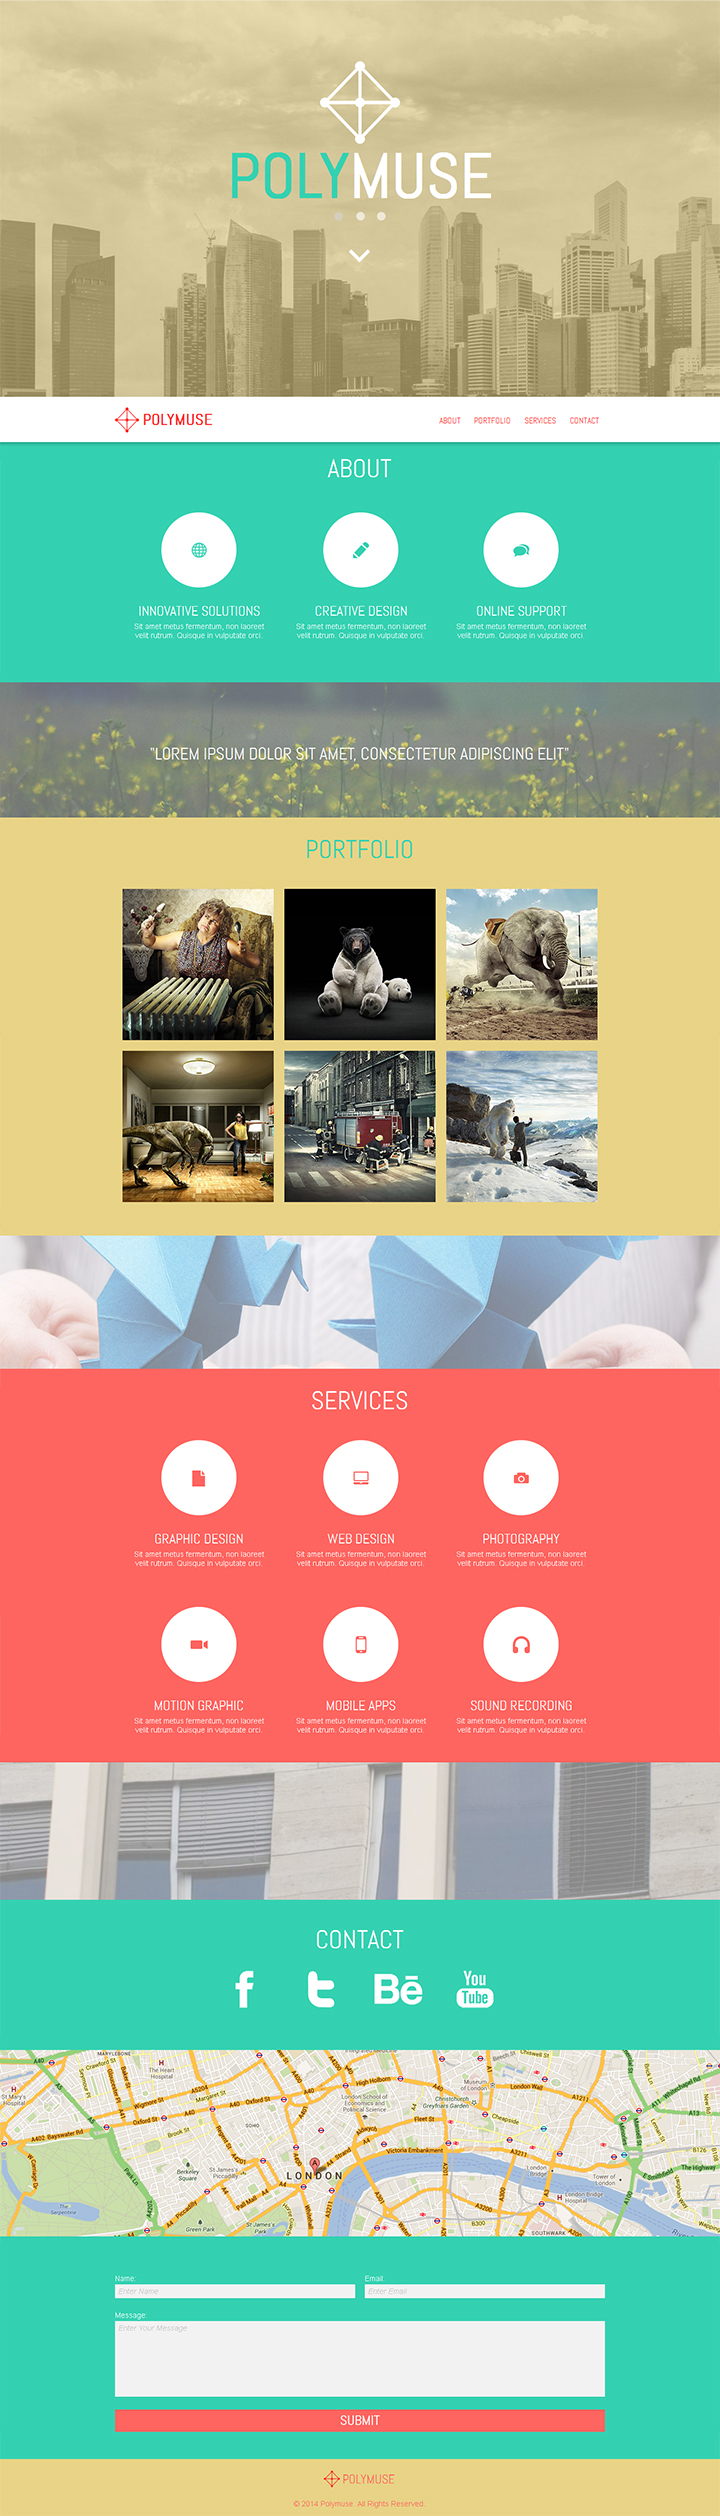 Polymuse One Page Parallax Muse Template By Pixelladyart Web